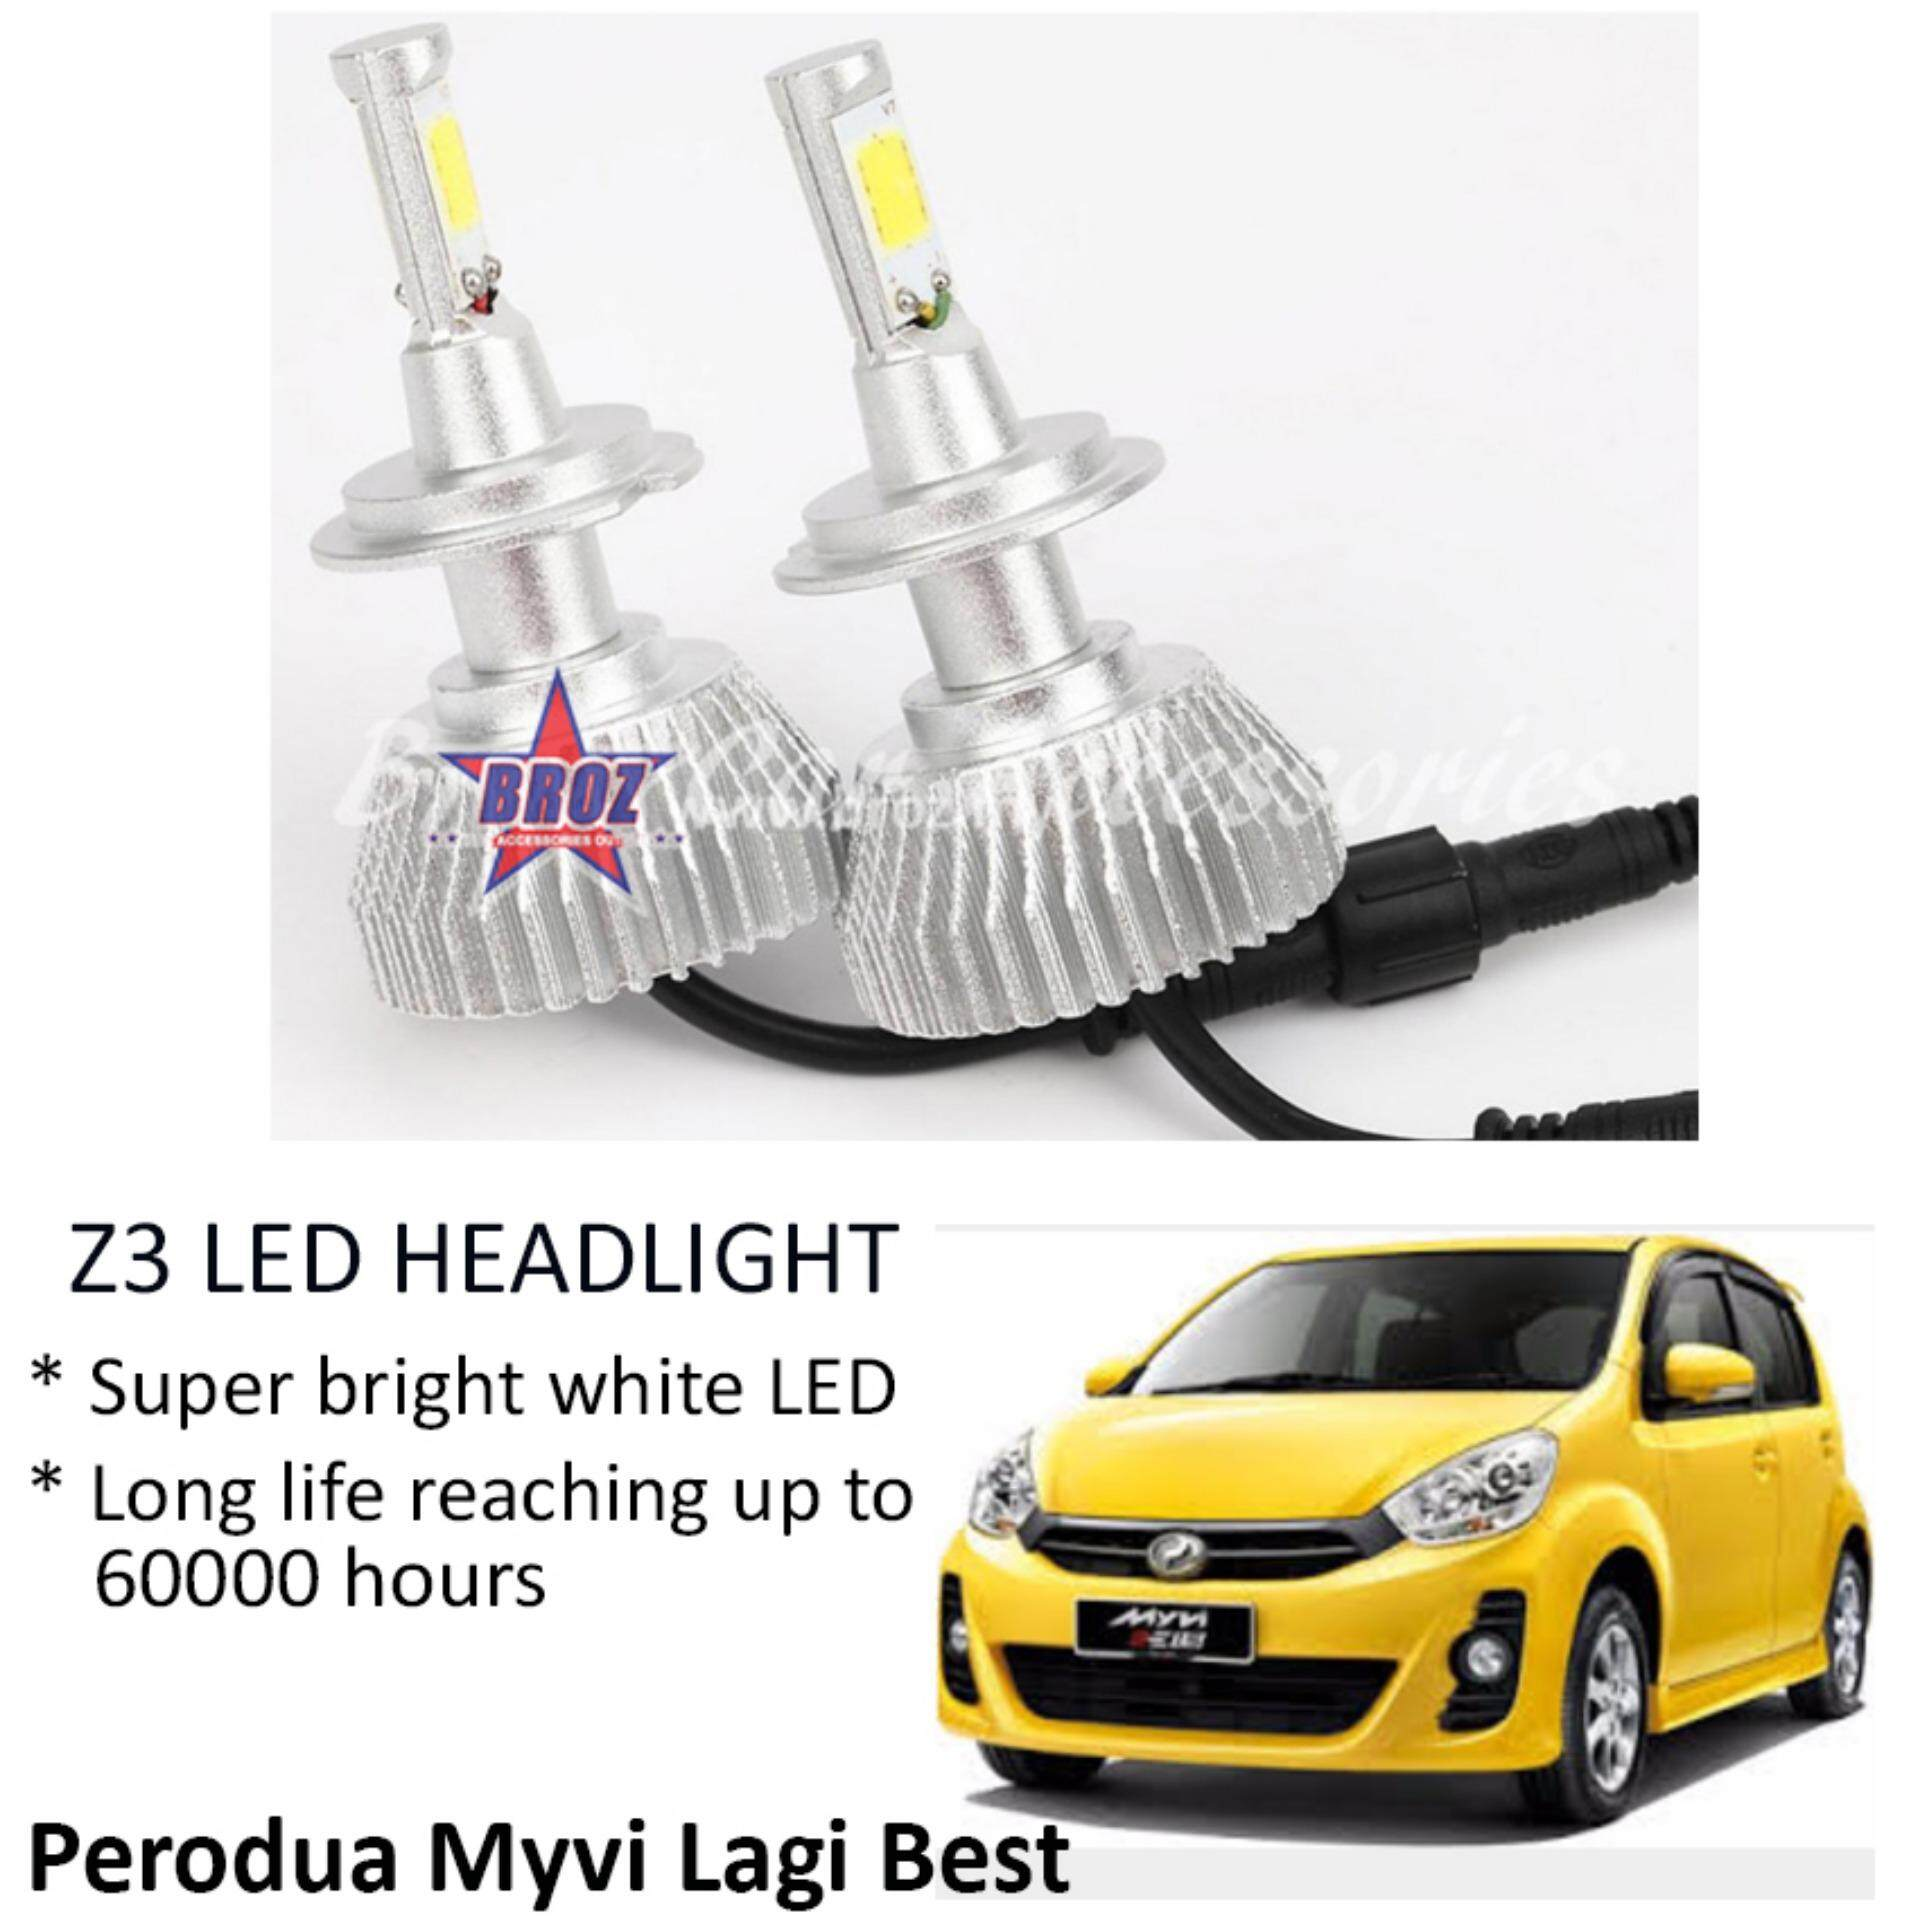 Perodua Myvi Lagi Best (Head Lamp) Z3 LED Light Car Headlight Auto Head light Lamp 6000k White Light